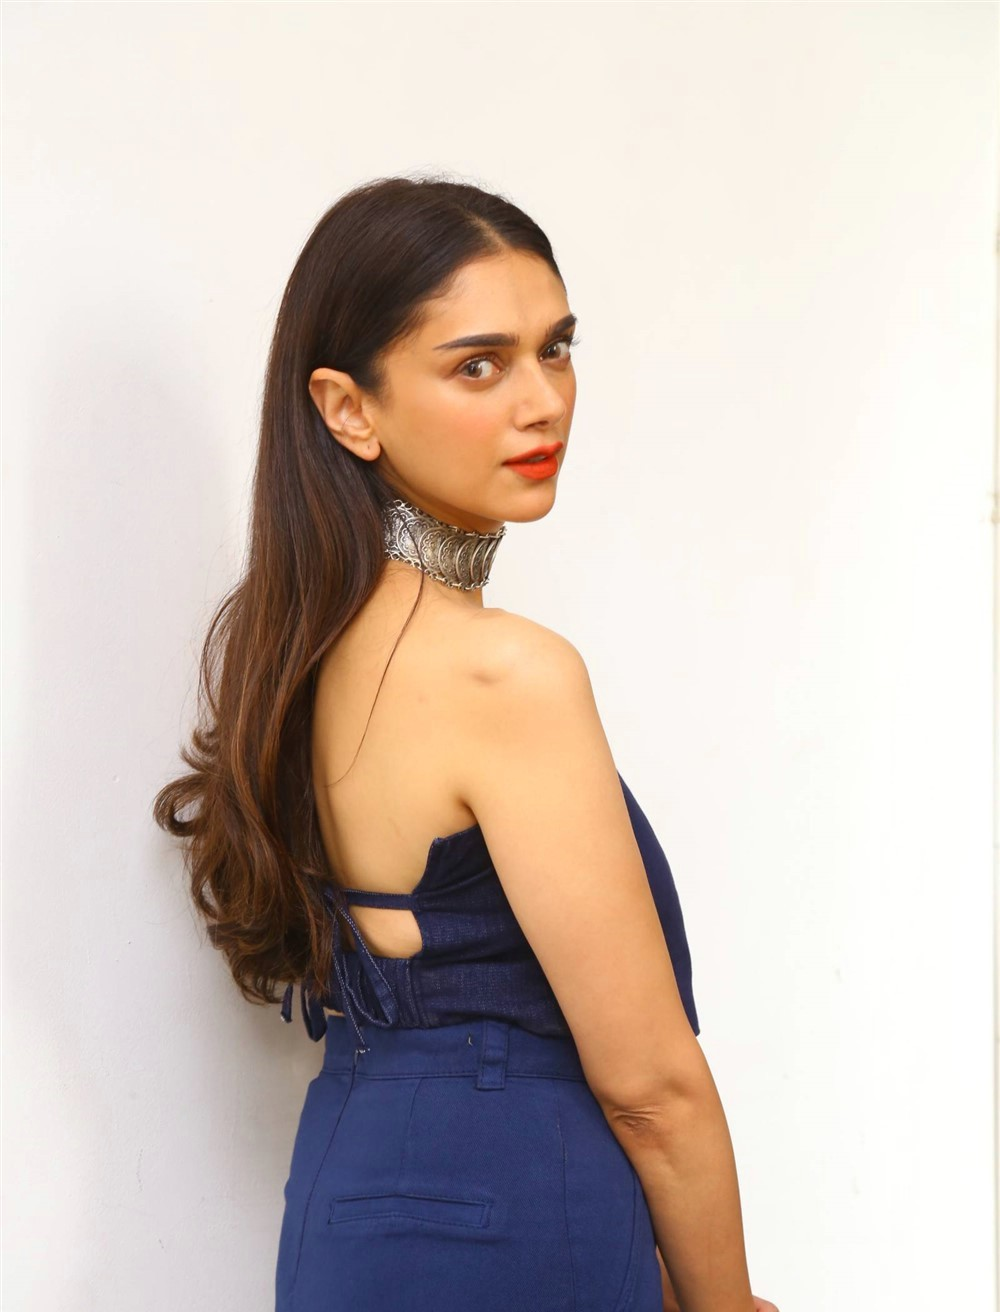 actress aditi rao hydari hot stills 3 Aditi Rao Hydari Hot Stills